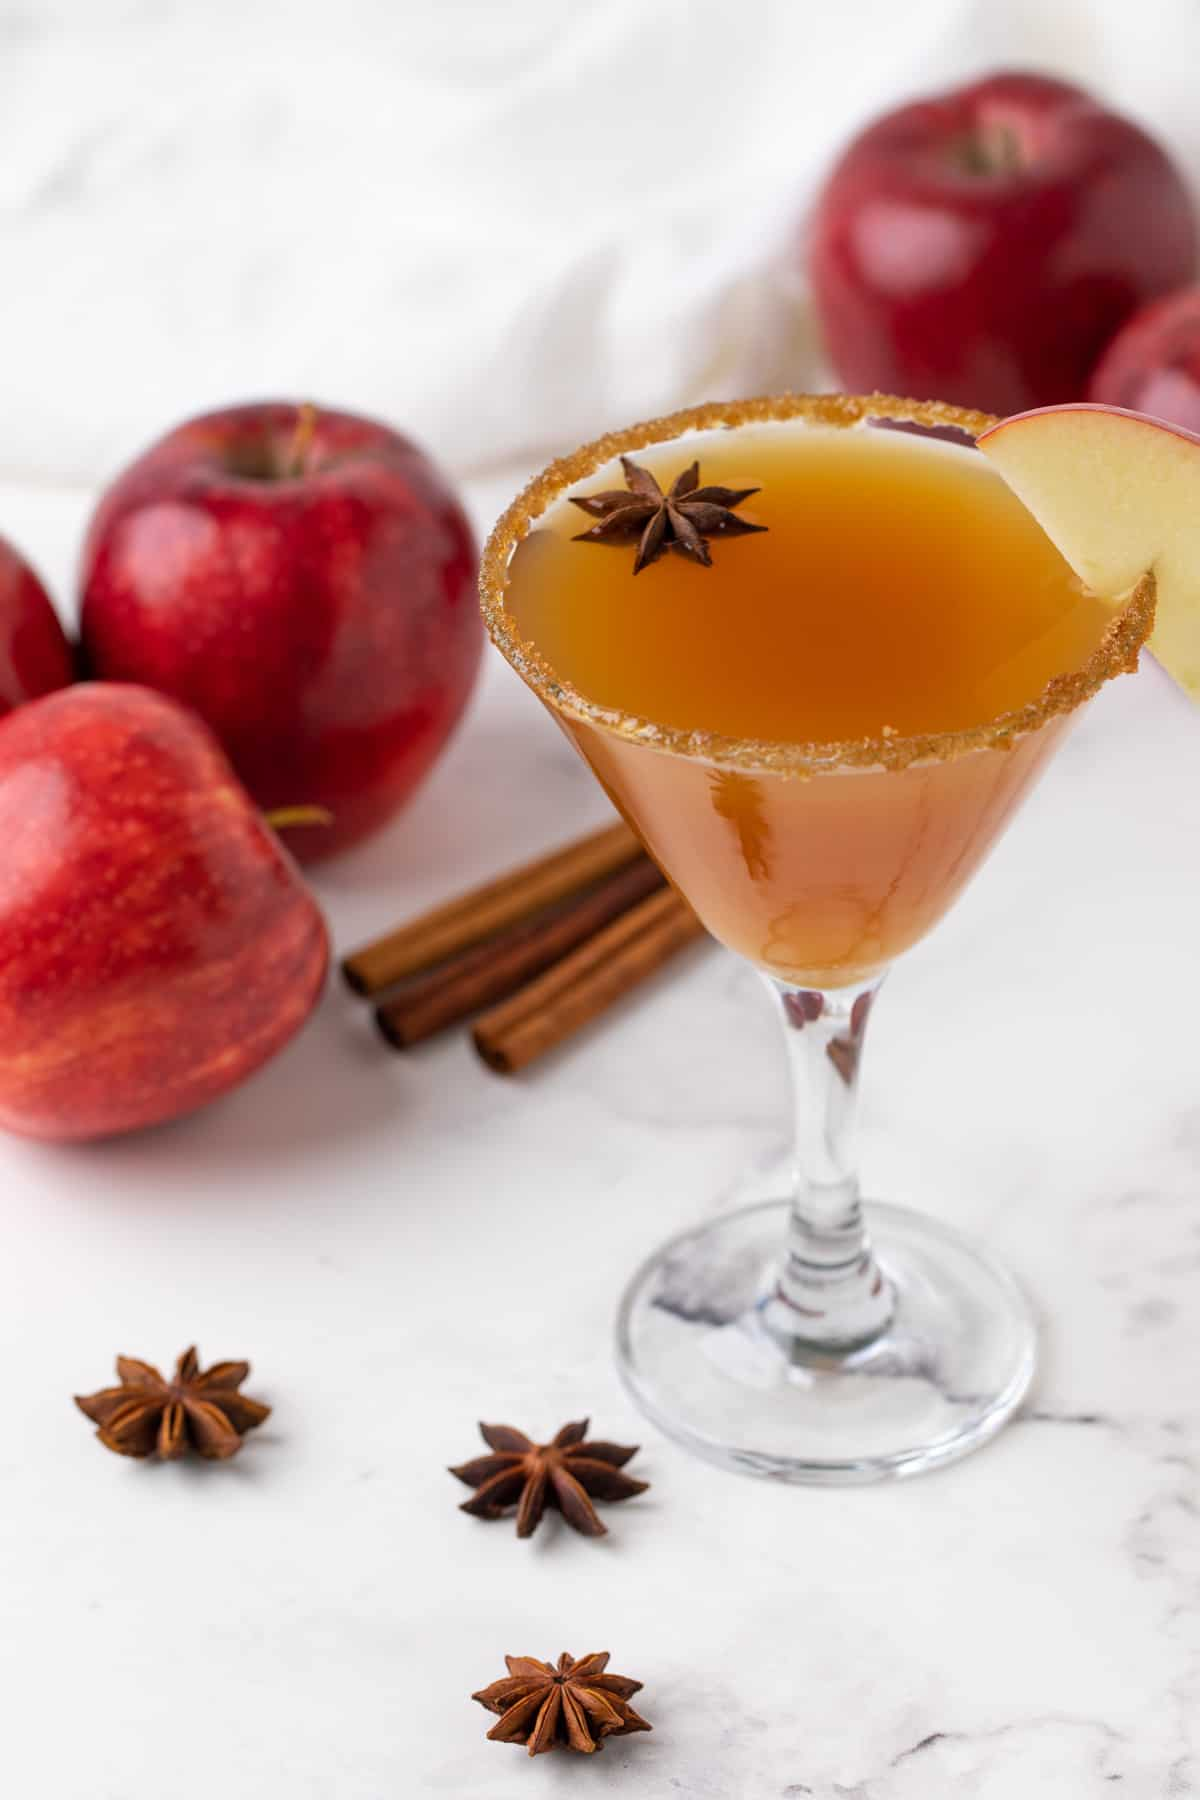 A martini with a caramel and brown sugar rim garnished with an apple slice and star anise.